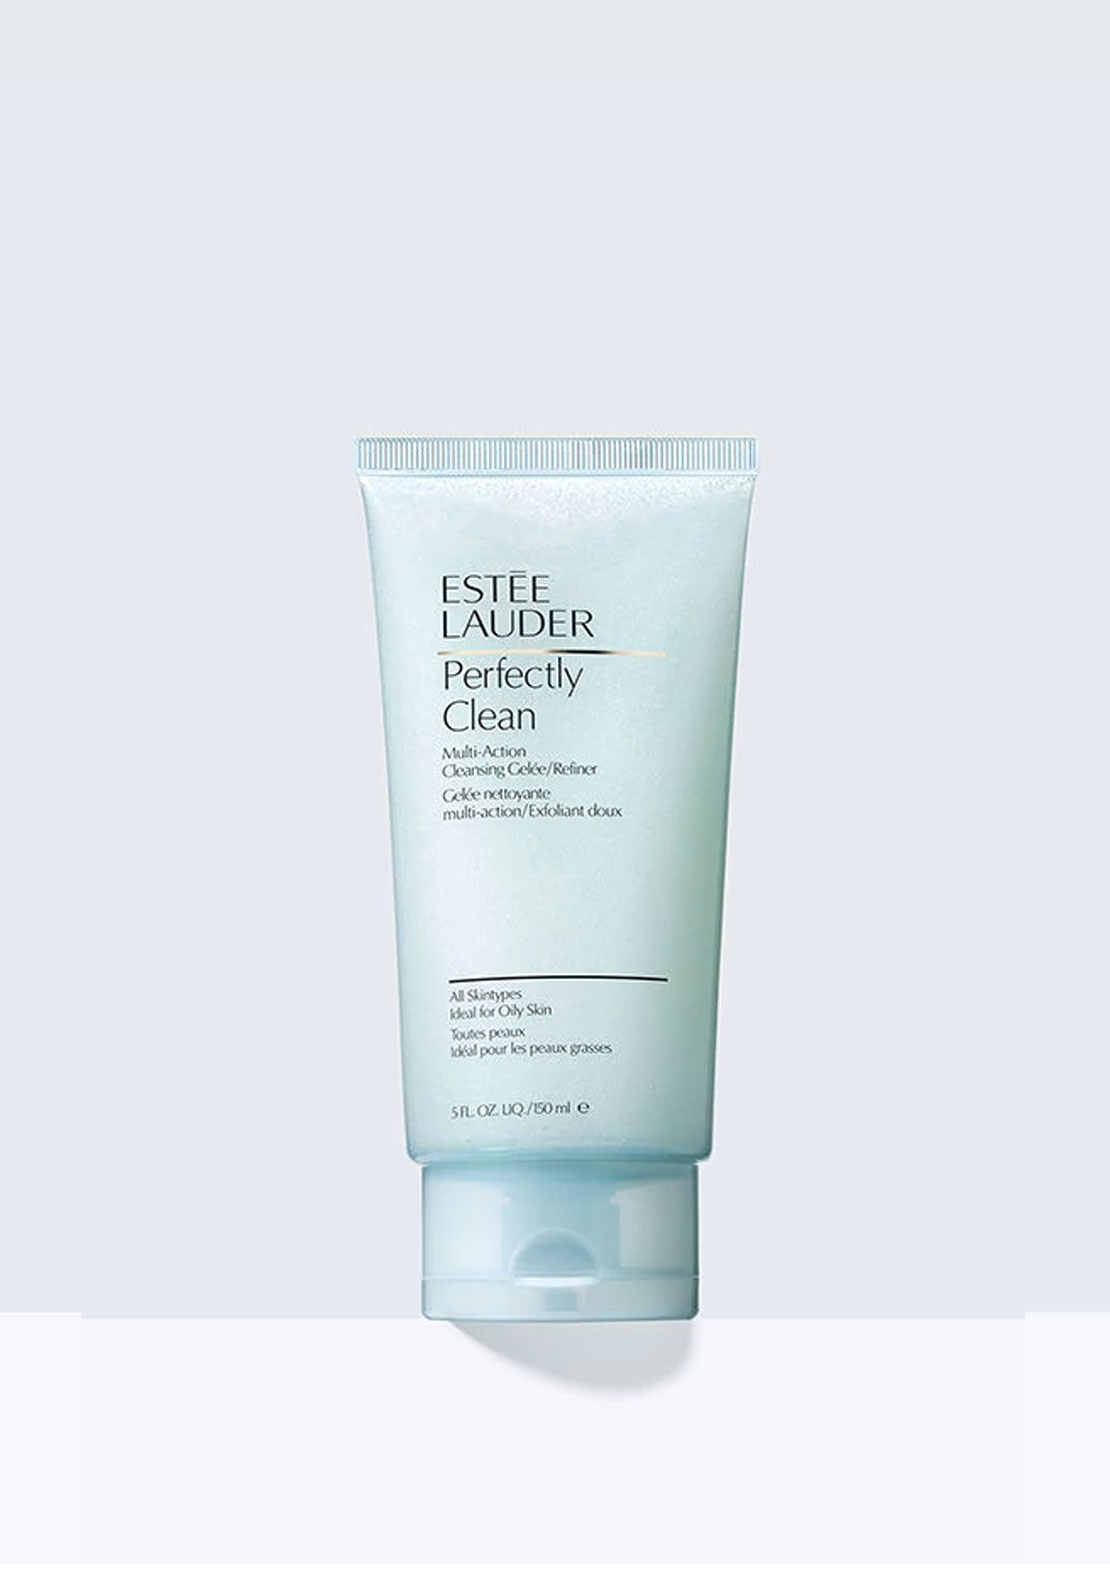 Estee Lauder Perfectly Clean Multi-action Cleansing Gelee / Refiner 150ml